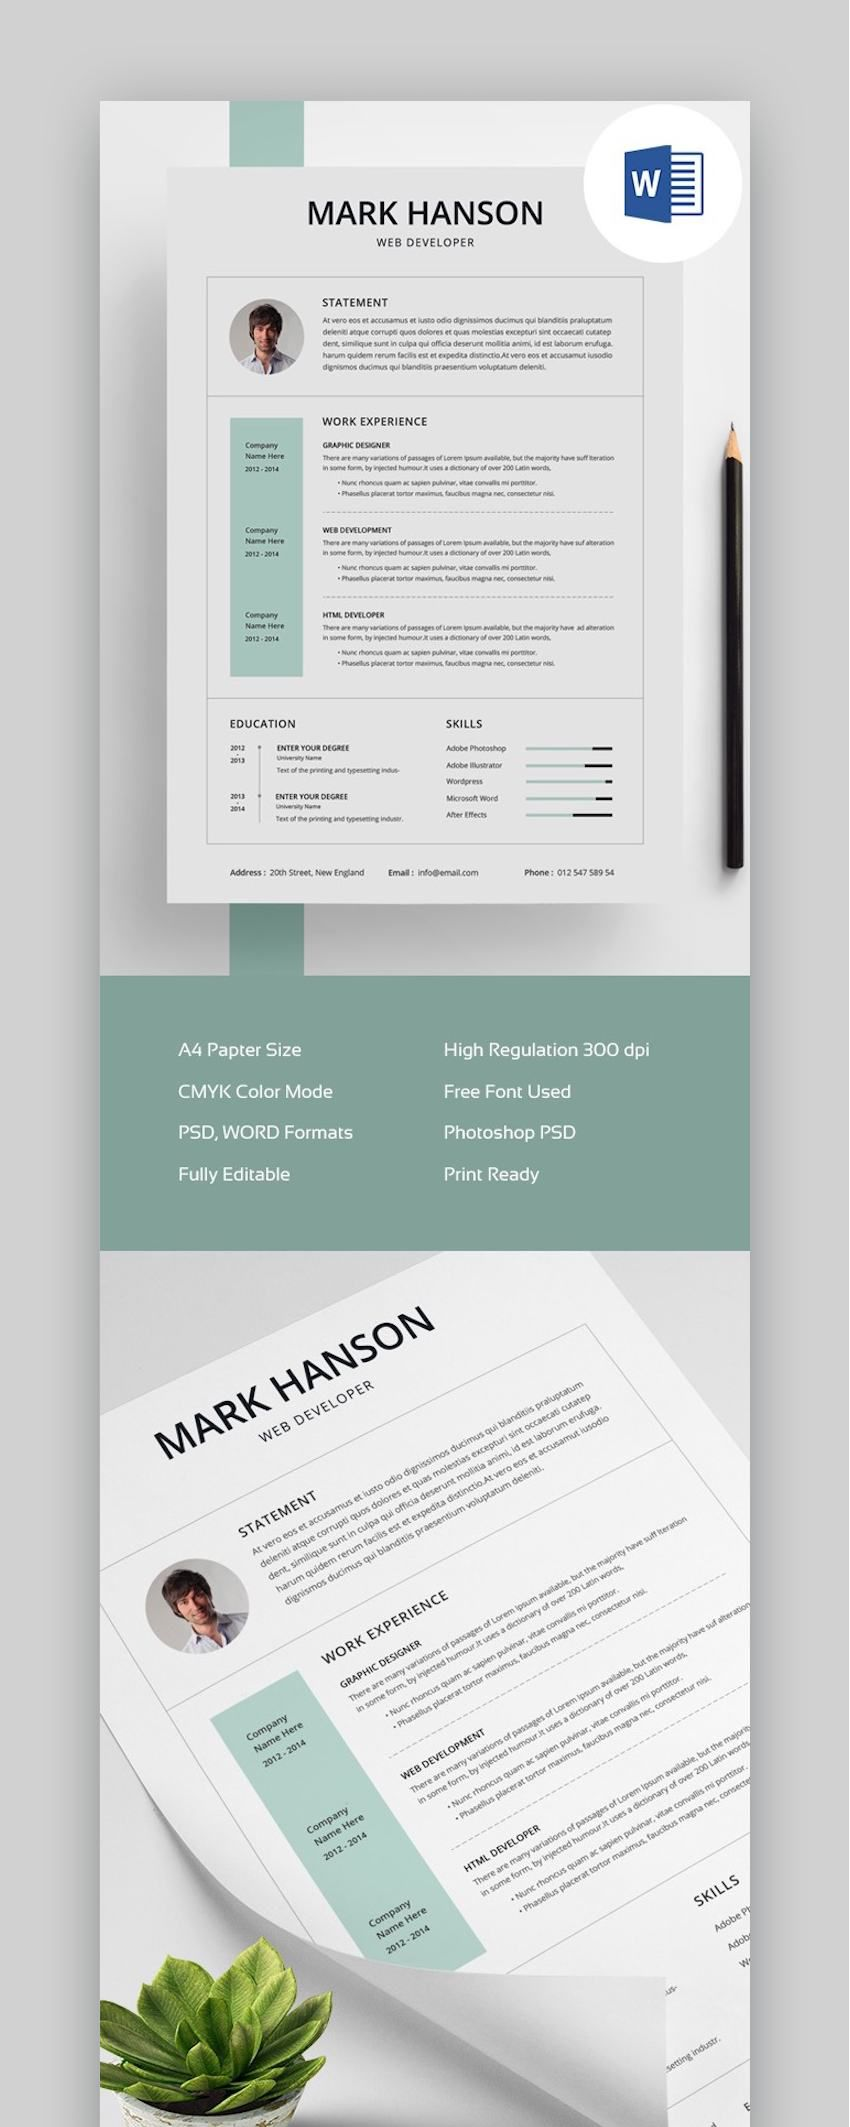 003 Archaicawful Download Elegant Resume Template Microsoft Word Image Full